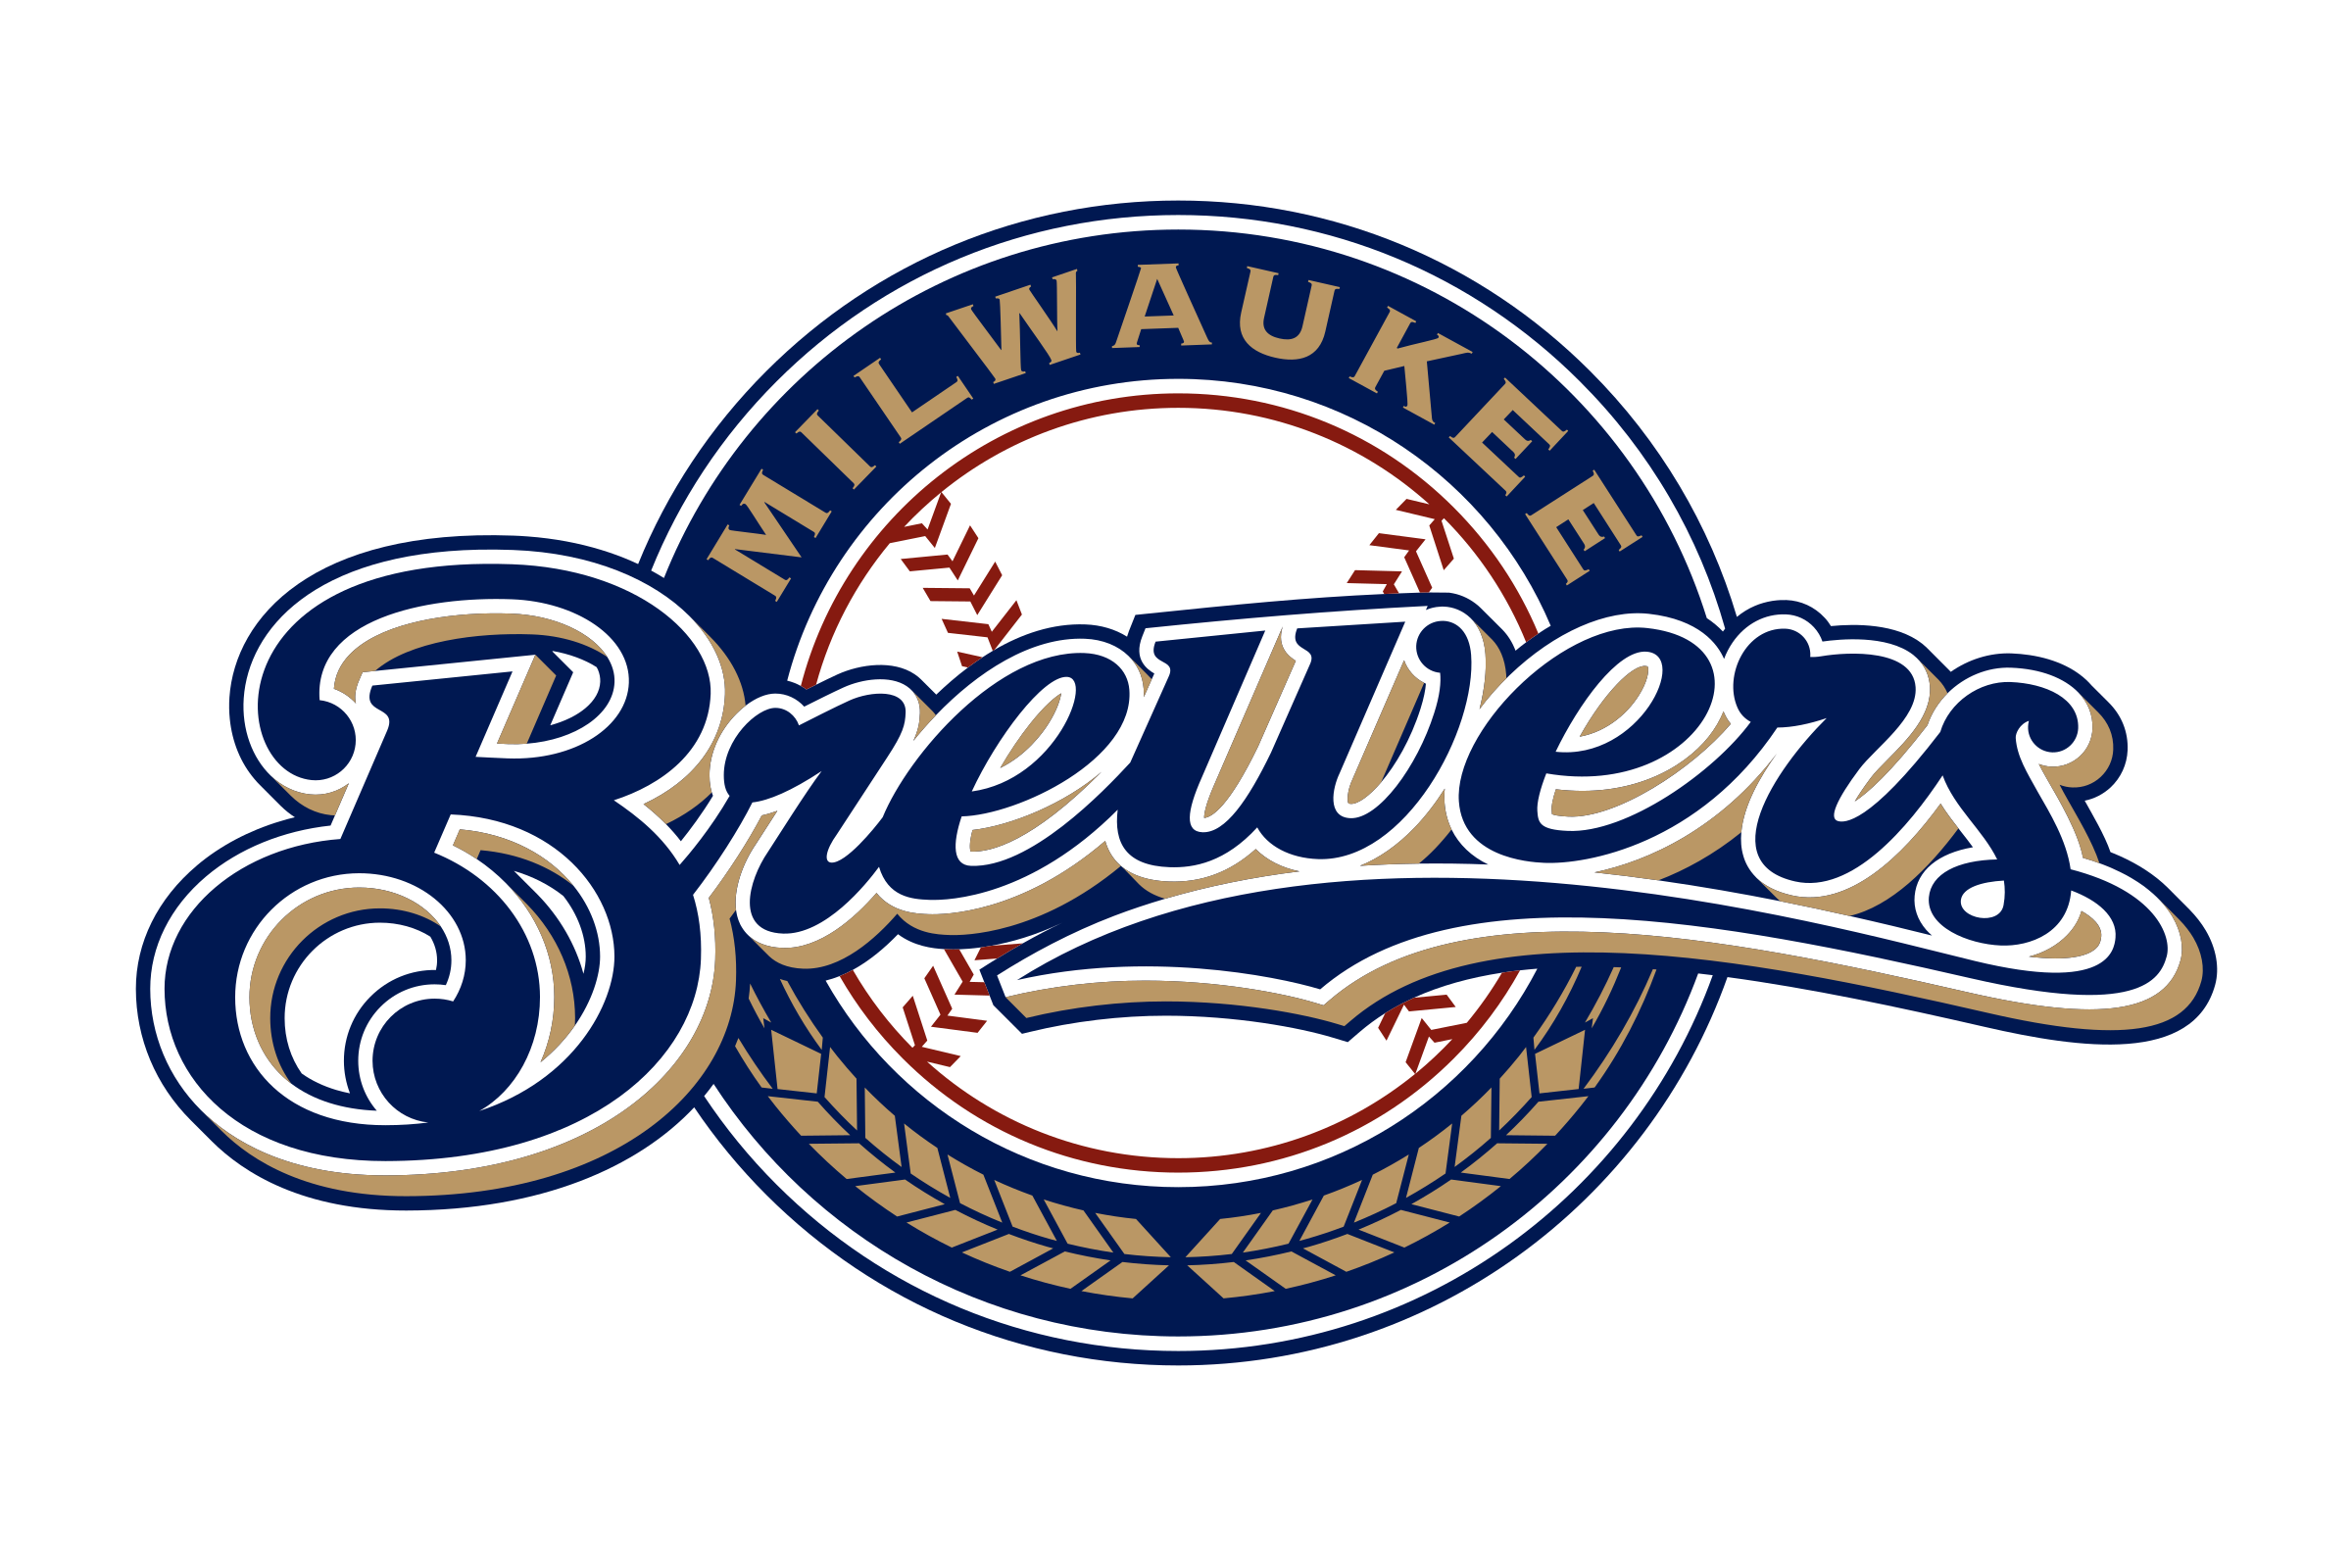 Milwaukee Brewers Logo Transparent Brewer Logo Brewers Baseball Baseball Teams Logo